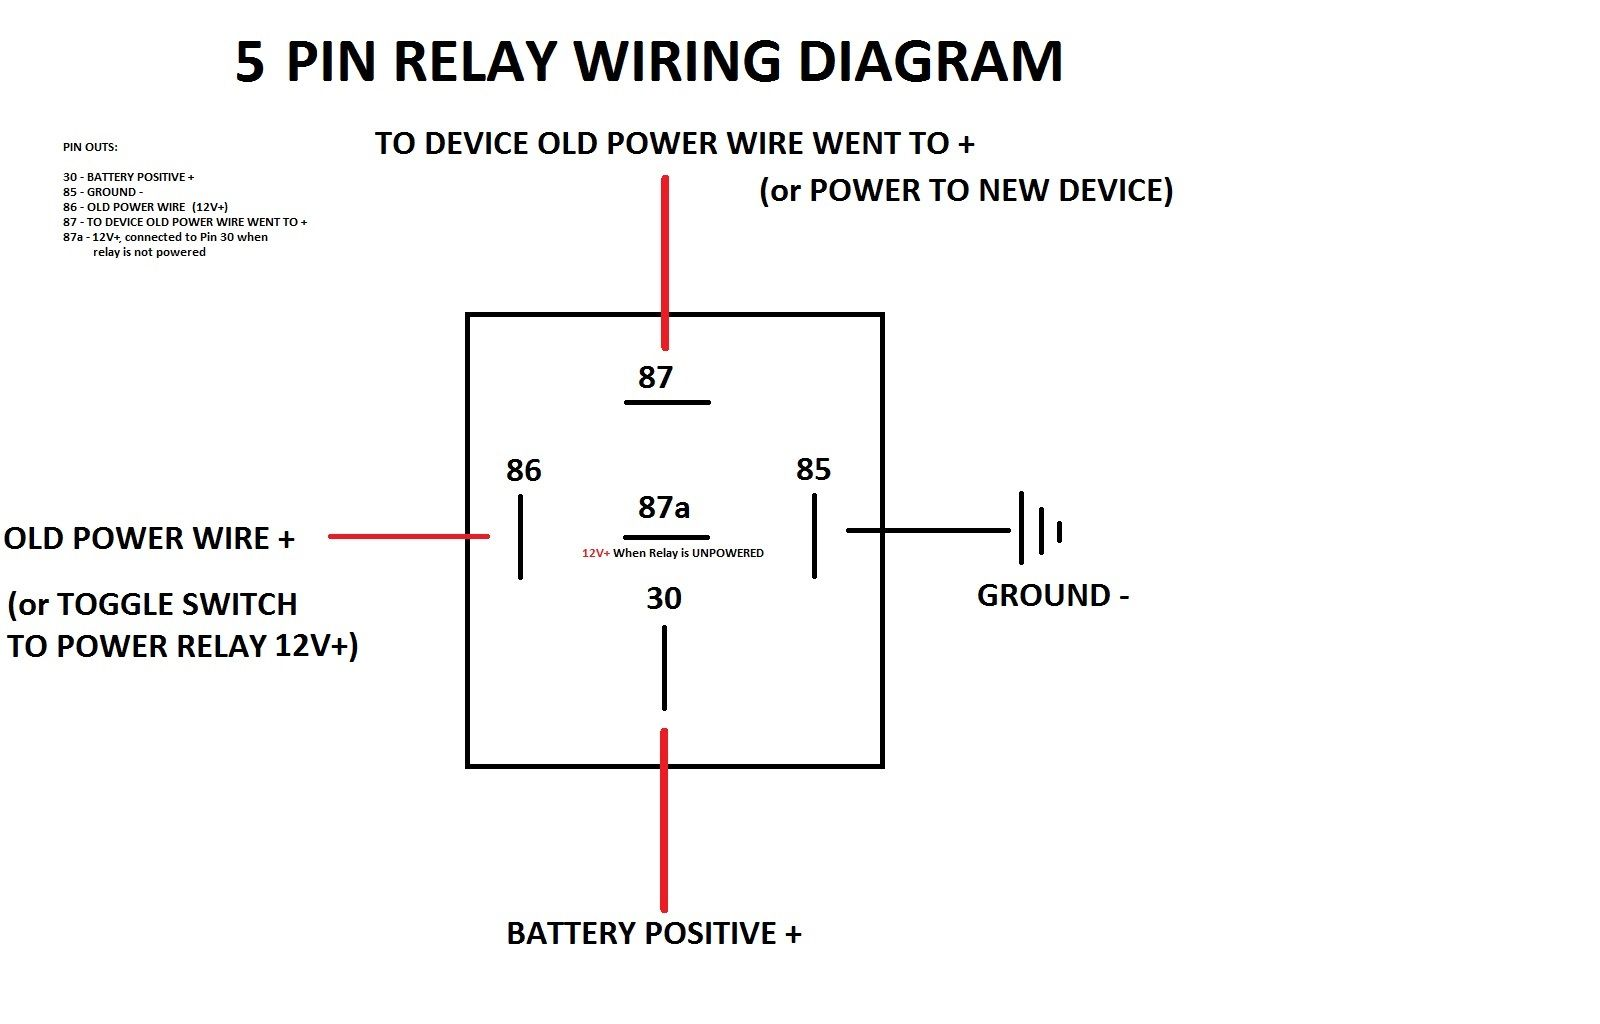 5 pin 12v relay diagram 8 8 ulrich temme de \u2022simple 5 pin relay diagram dsmtuners 12 v pinterest diagram rh pinterest com 12v 5 pin fog light relay diagram 12v relay 5 pin circuit diagram